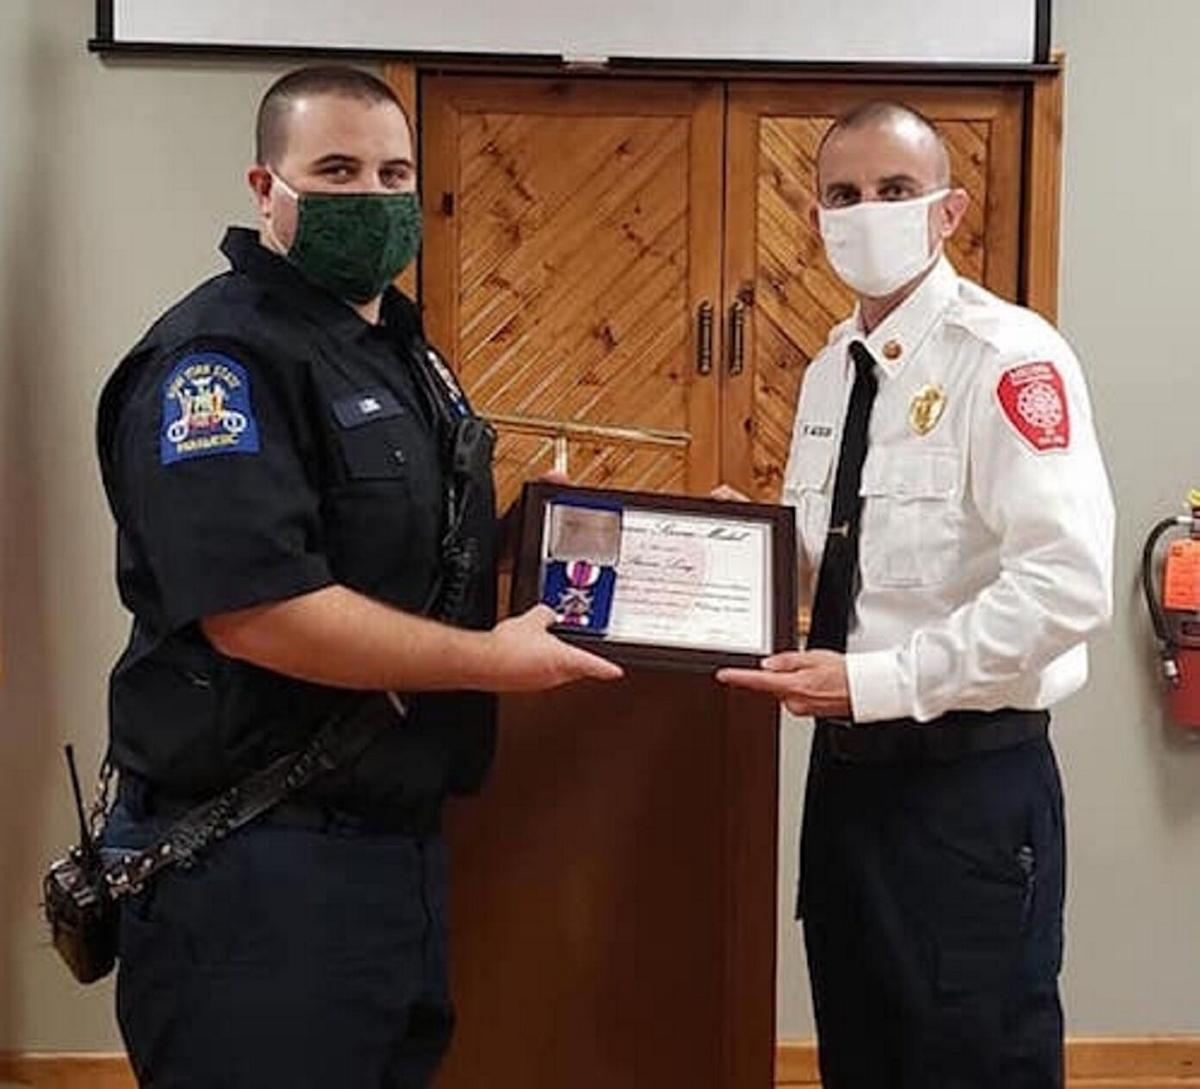 Fire chief turns to social media to present awards